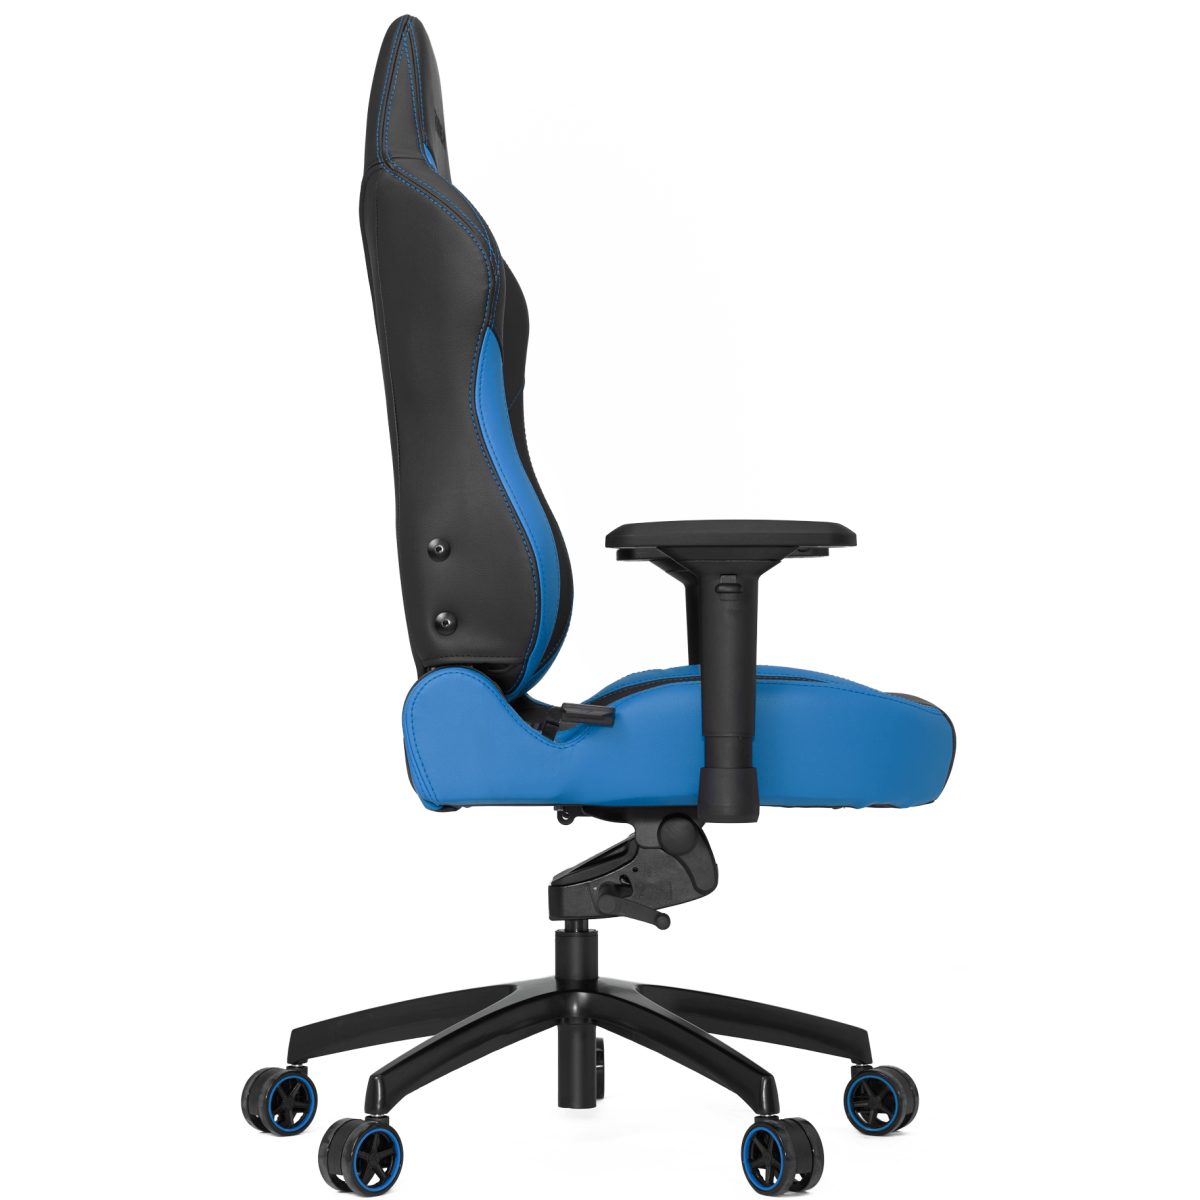 Cadeira Gamer Vertagear Racing PL6000, Black-Blue, VG-PL6000_BL